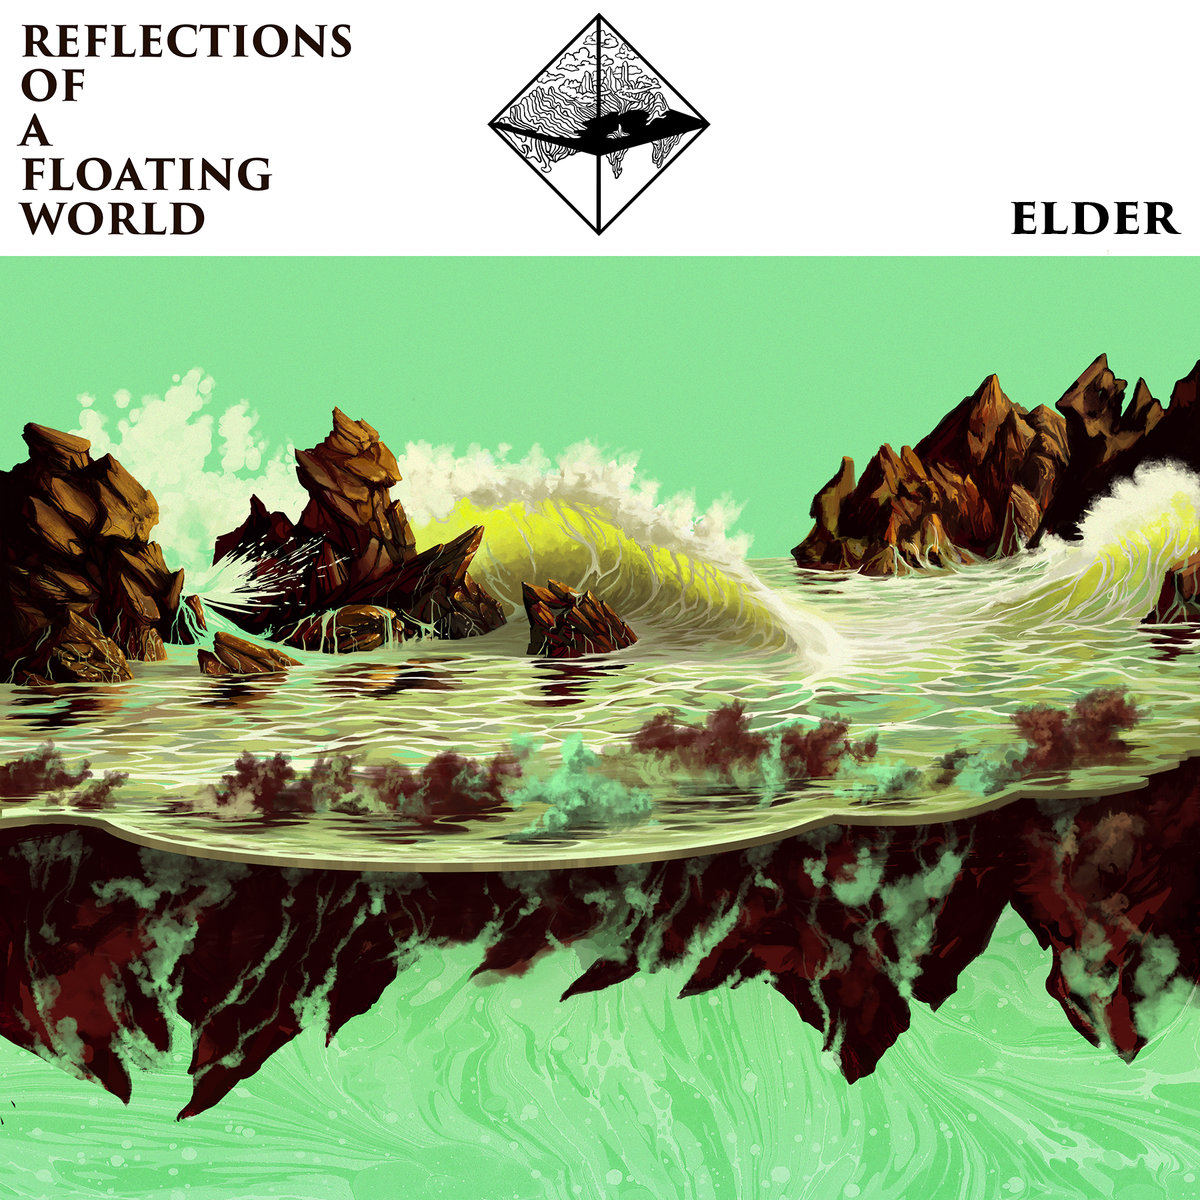 elder reflections of a floating world adrian dexter